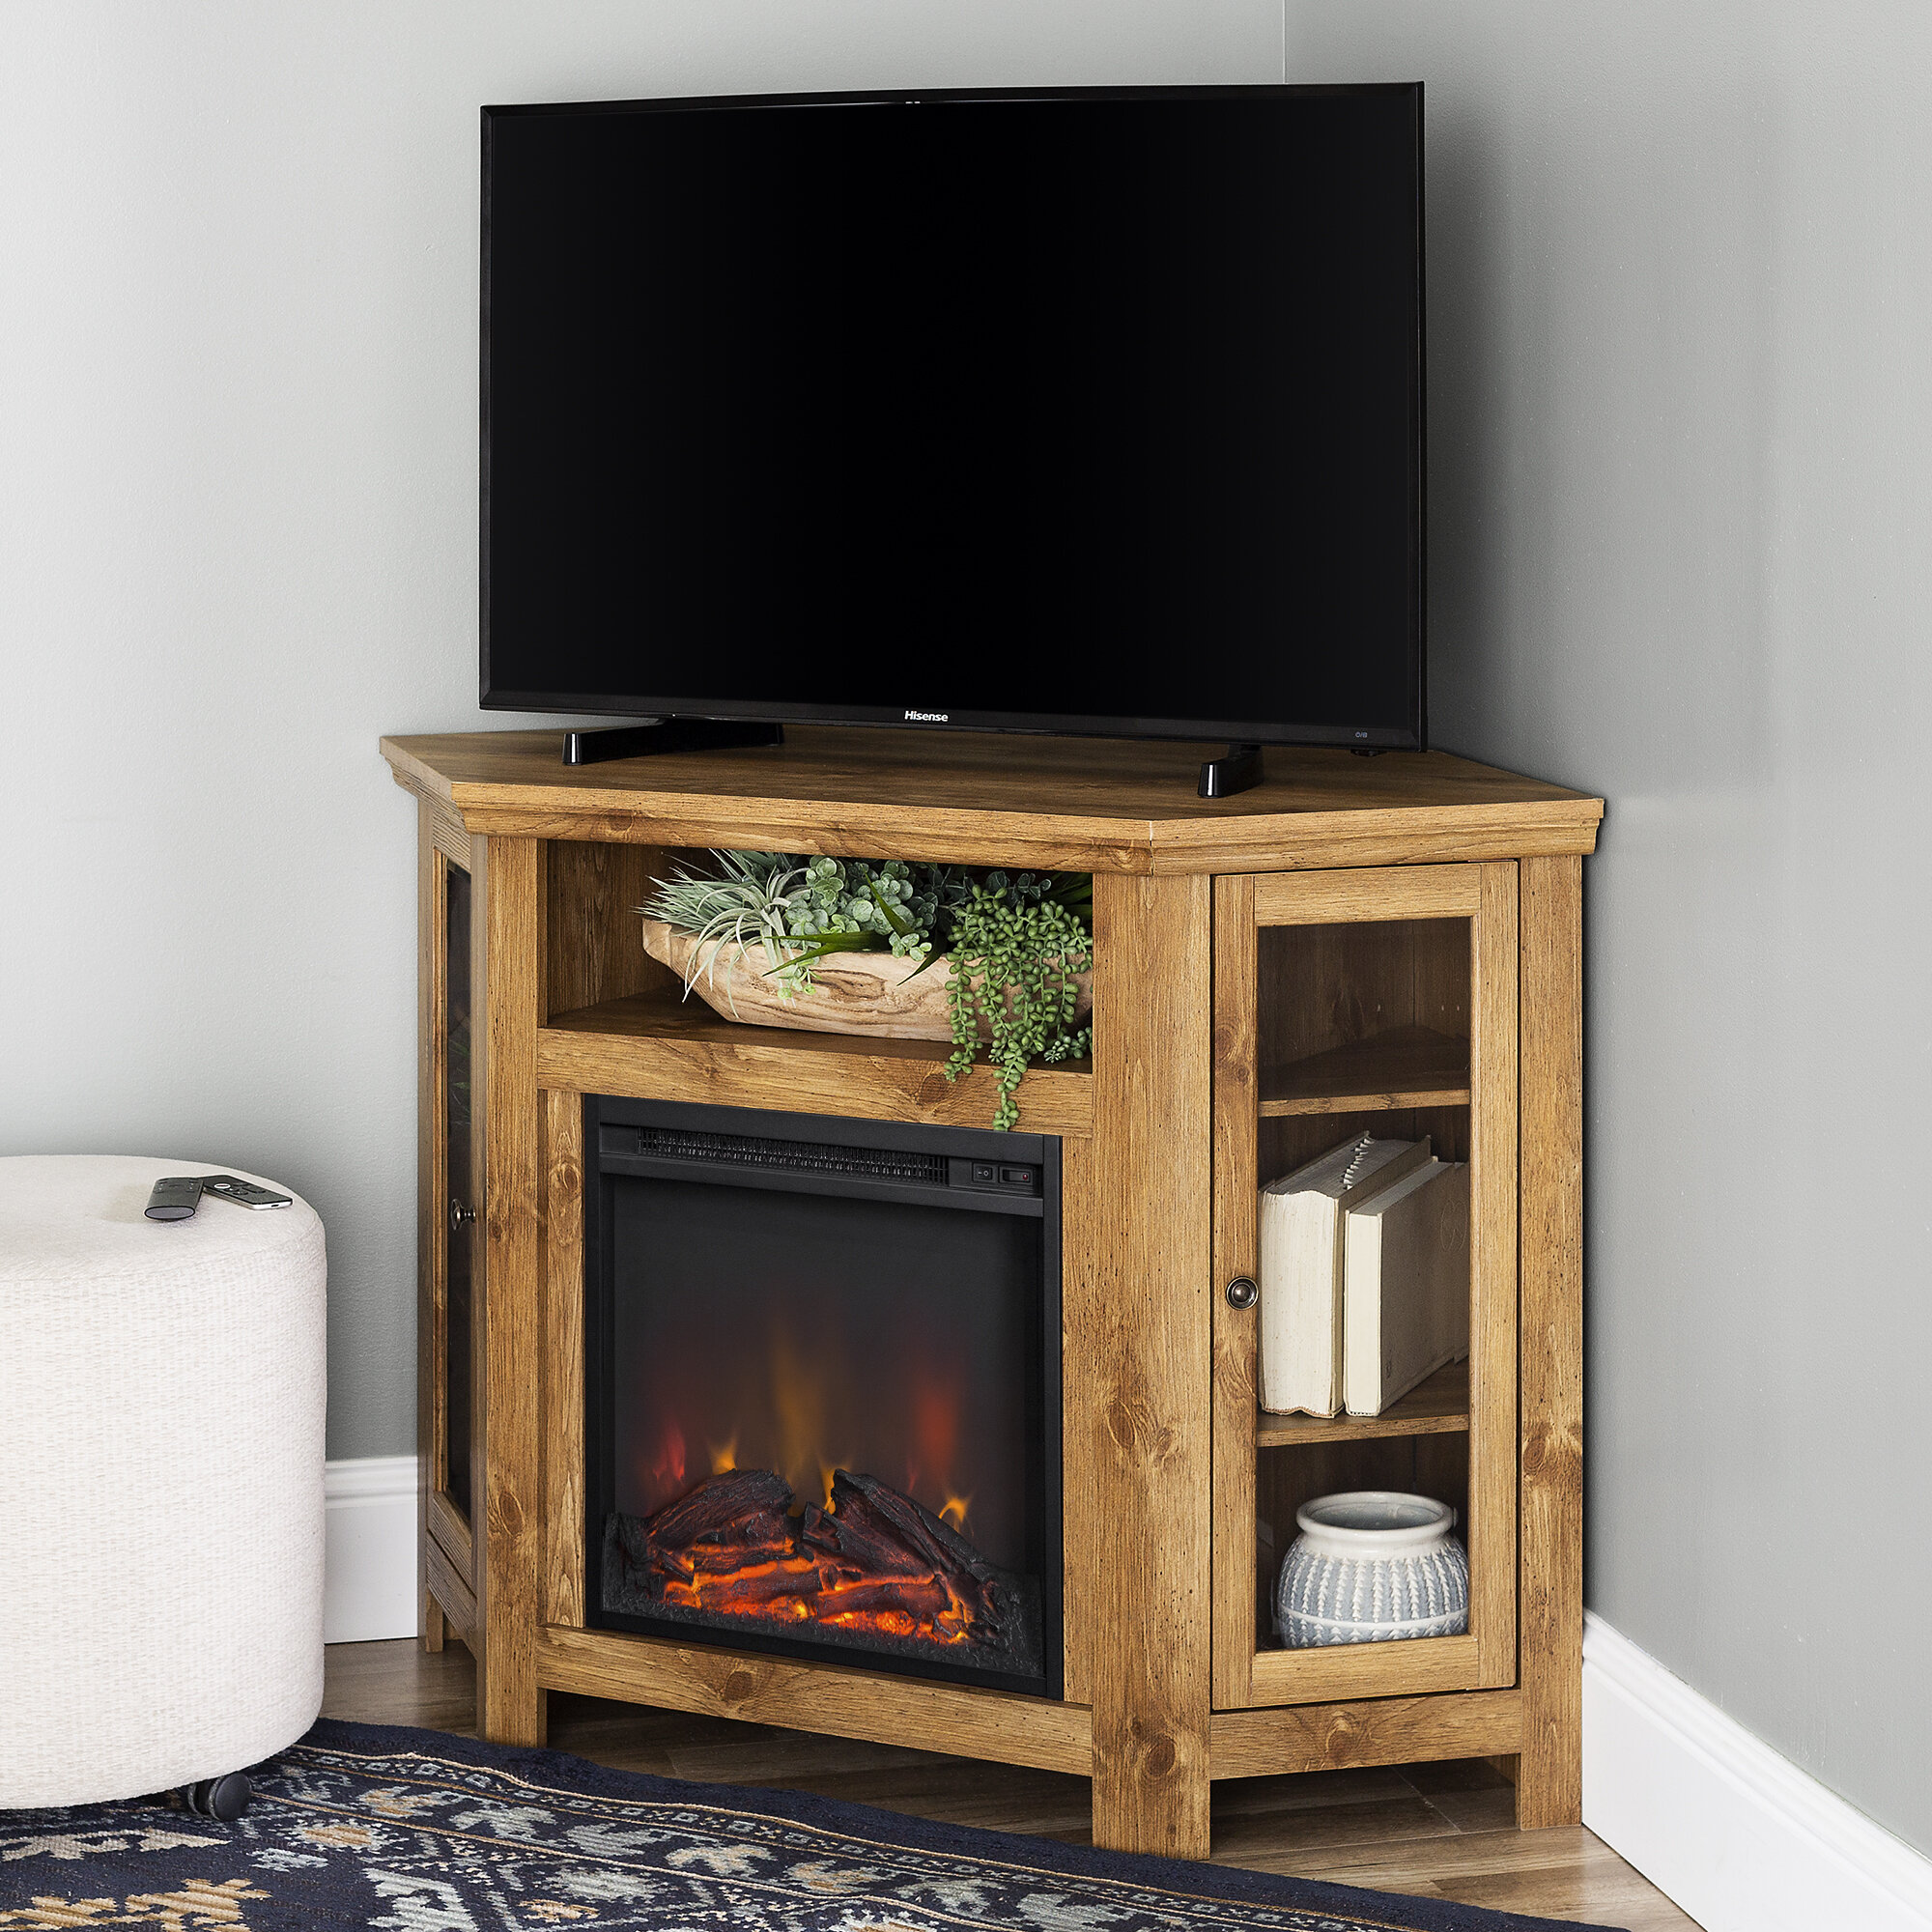 Tieton Corner Tv Stand For Tvs Up To 55 With Electric Fireplace Included